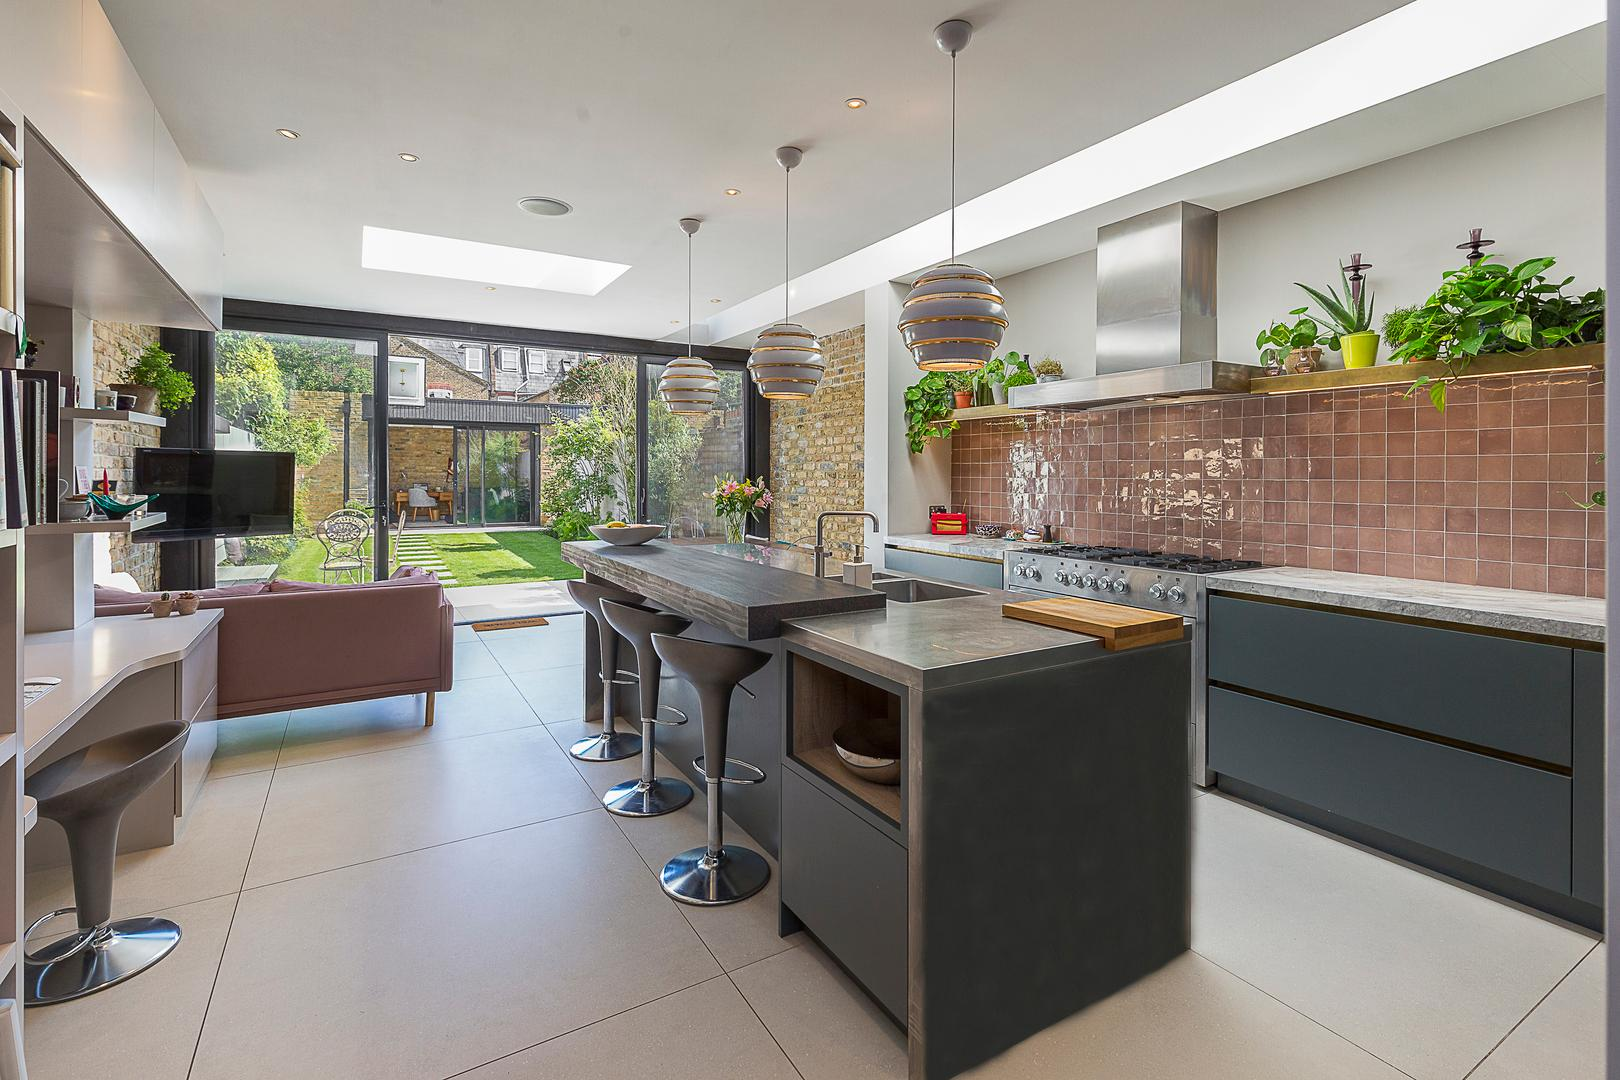 Property Image 1 - Impeccable Fulham Home with Large Garden by the River